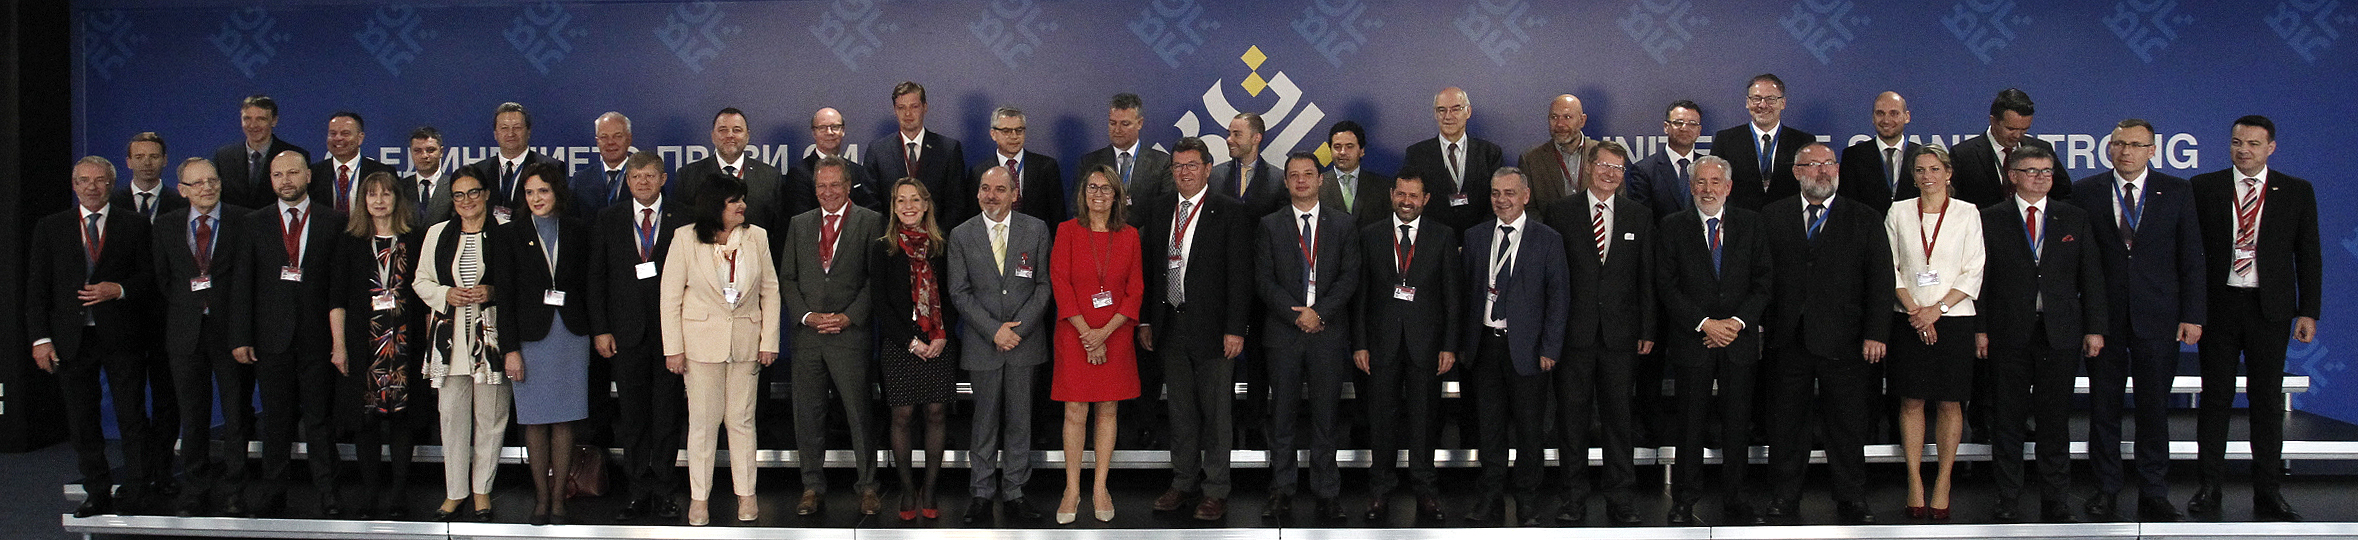 Meeting of the Chairpersons of the Energy committees of the EU parliaments - Family photo